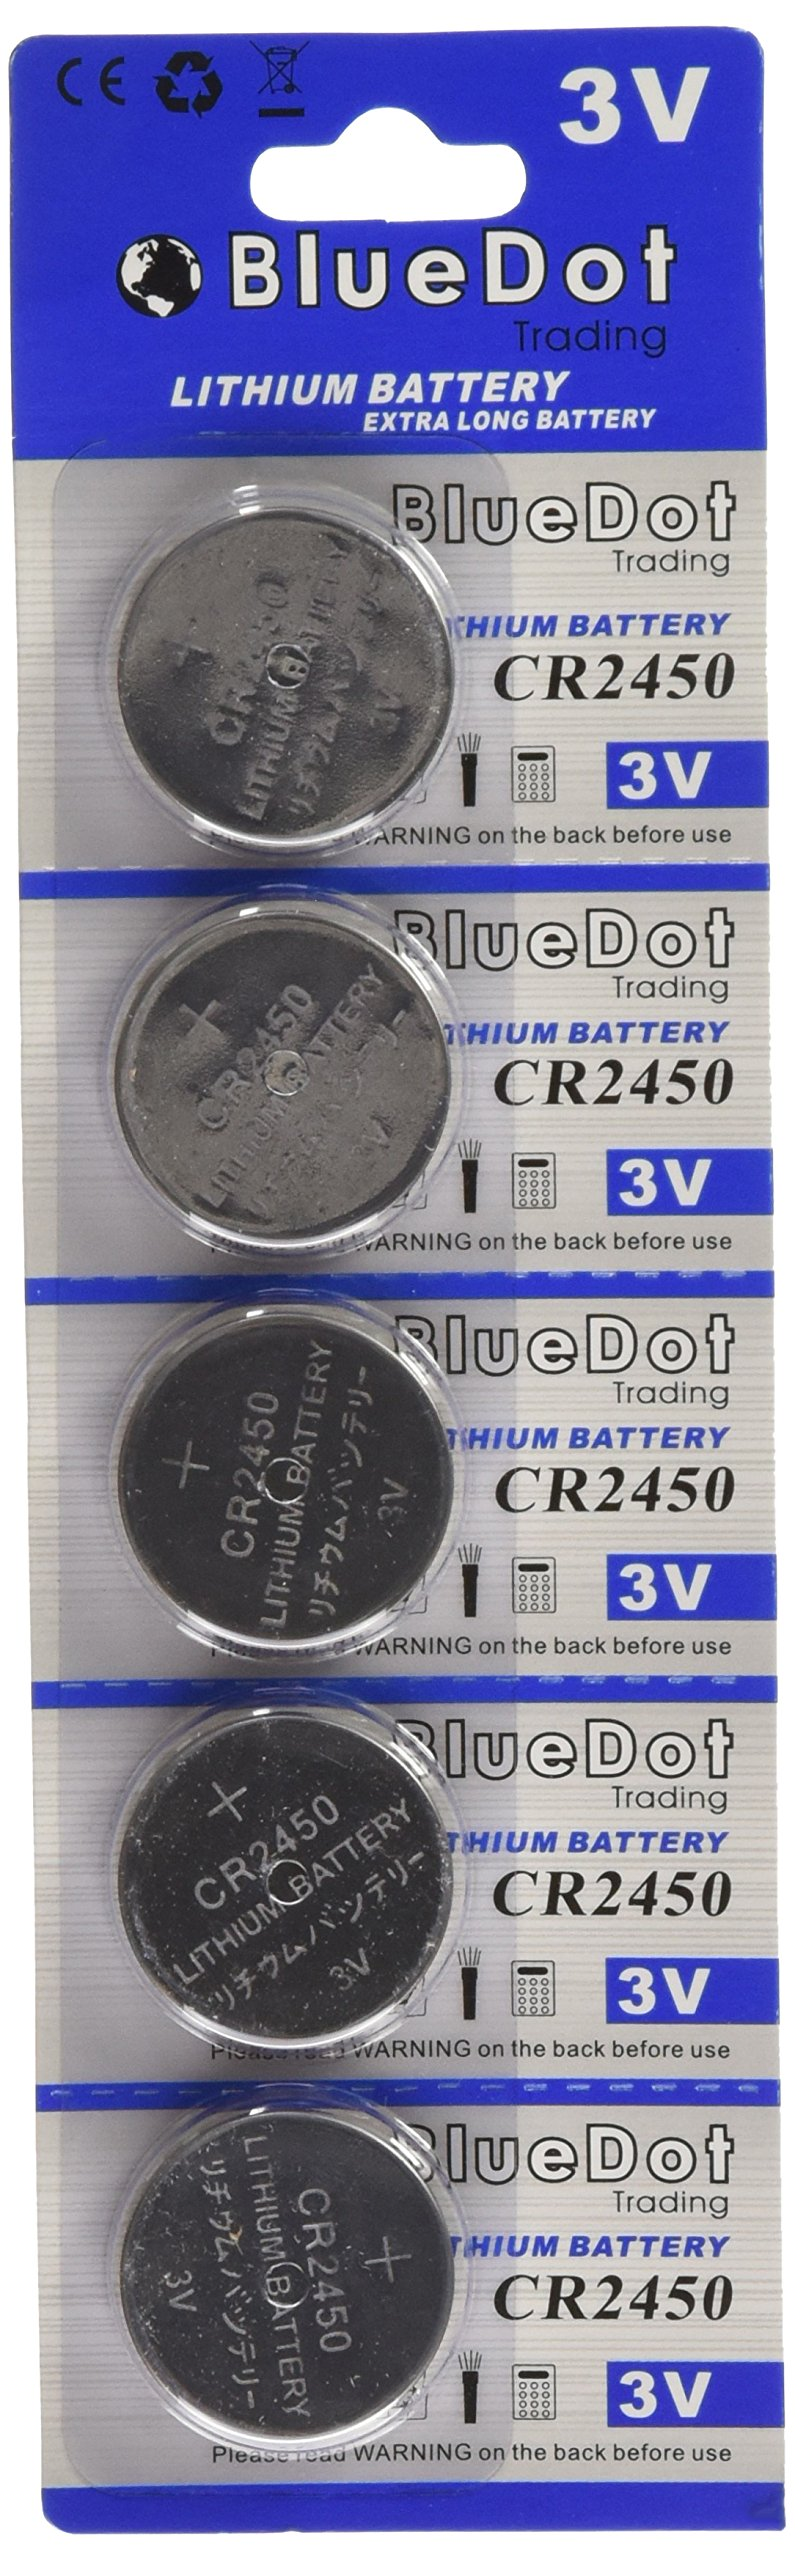 BlueDot Trading CR2450 Lithium Cell Battery, 50 Count